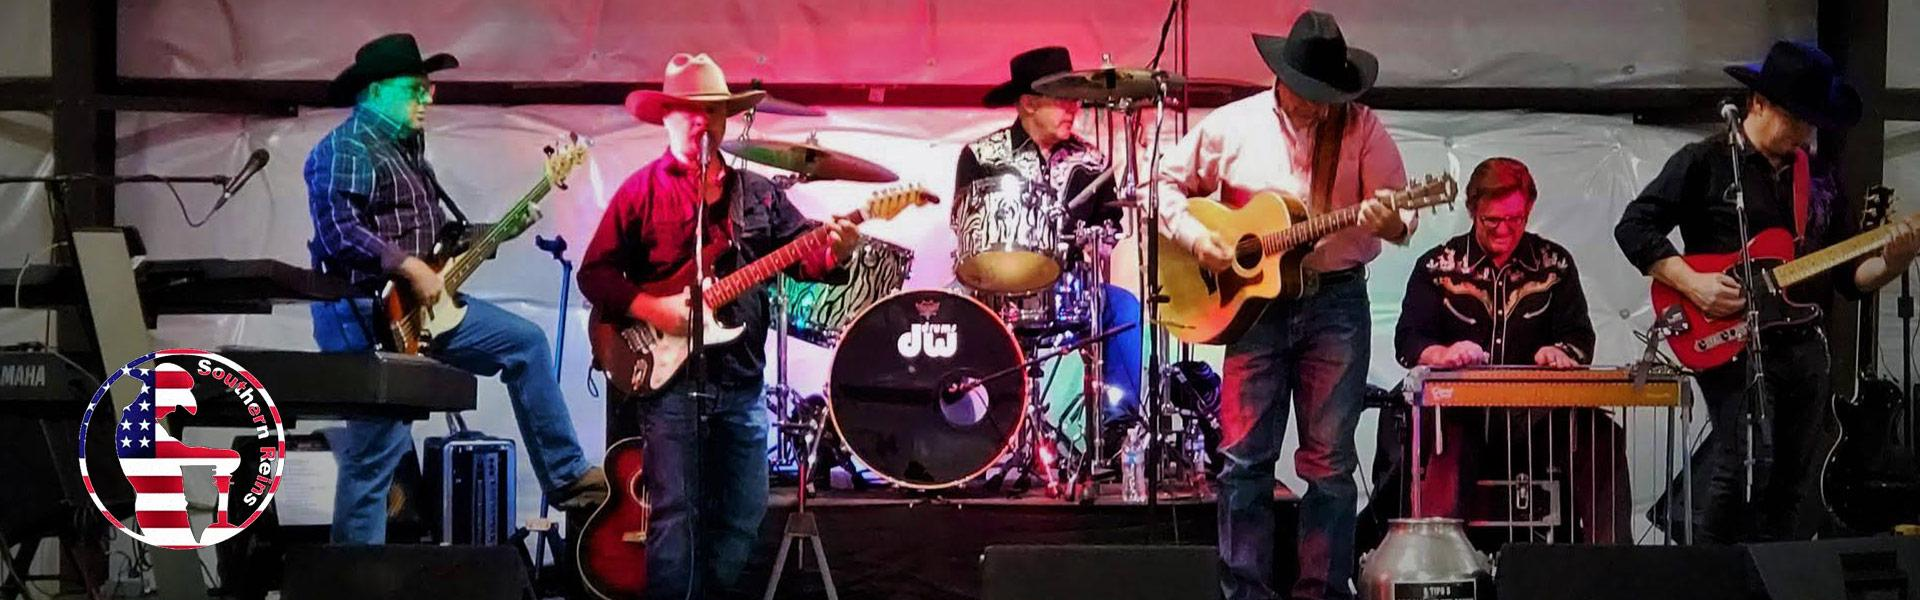 Southern Reins Band - Tucson Country Music